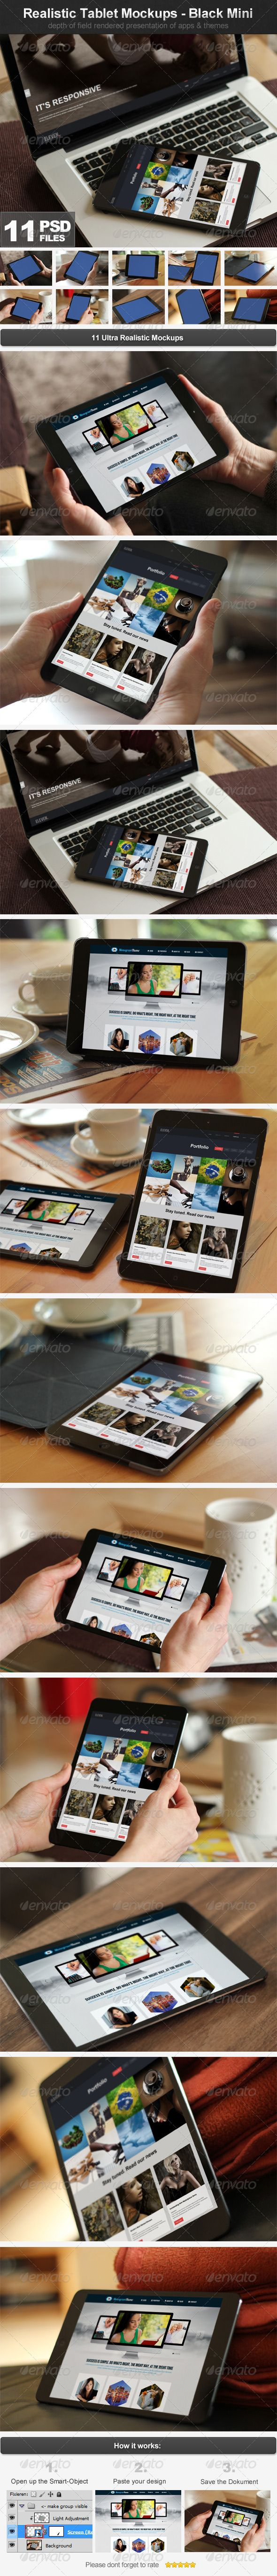 Realistic Tablet Mockups - Black Mini - Mobile Displays